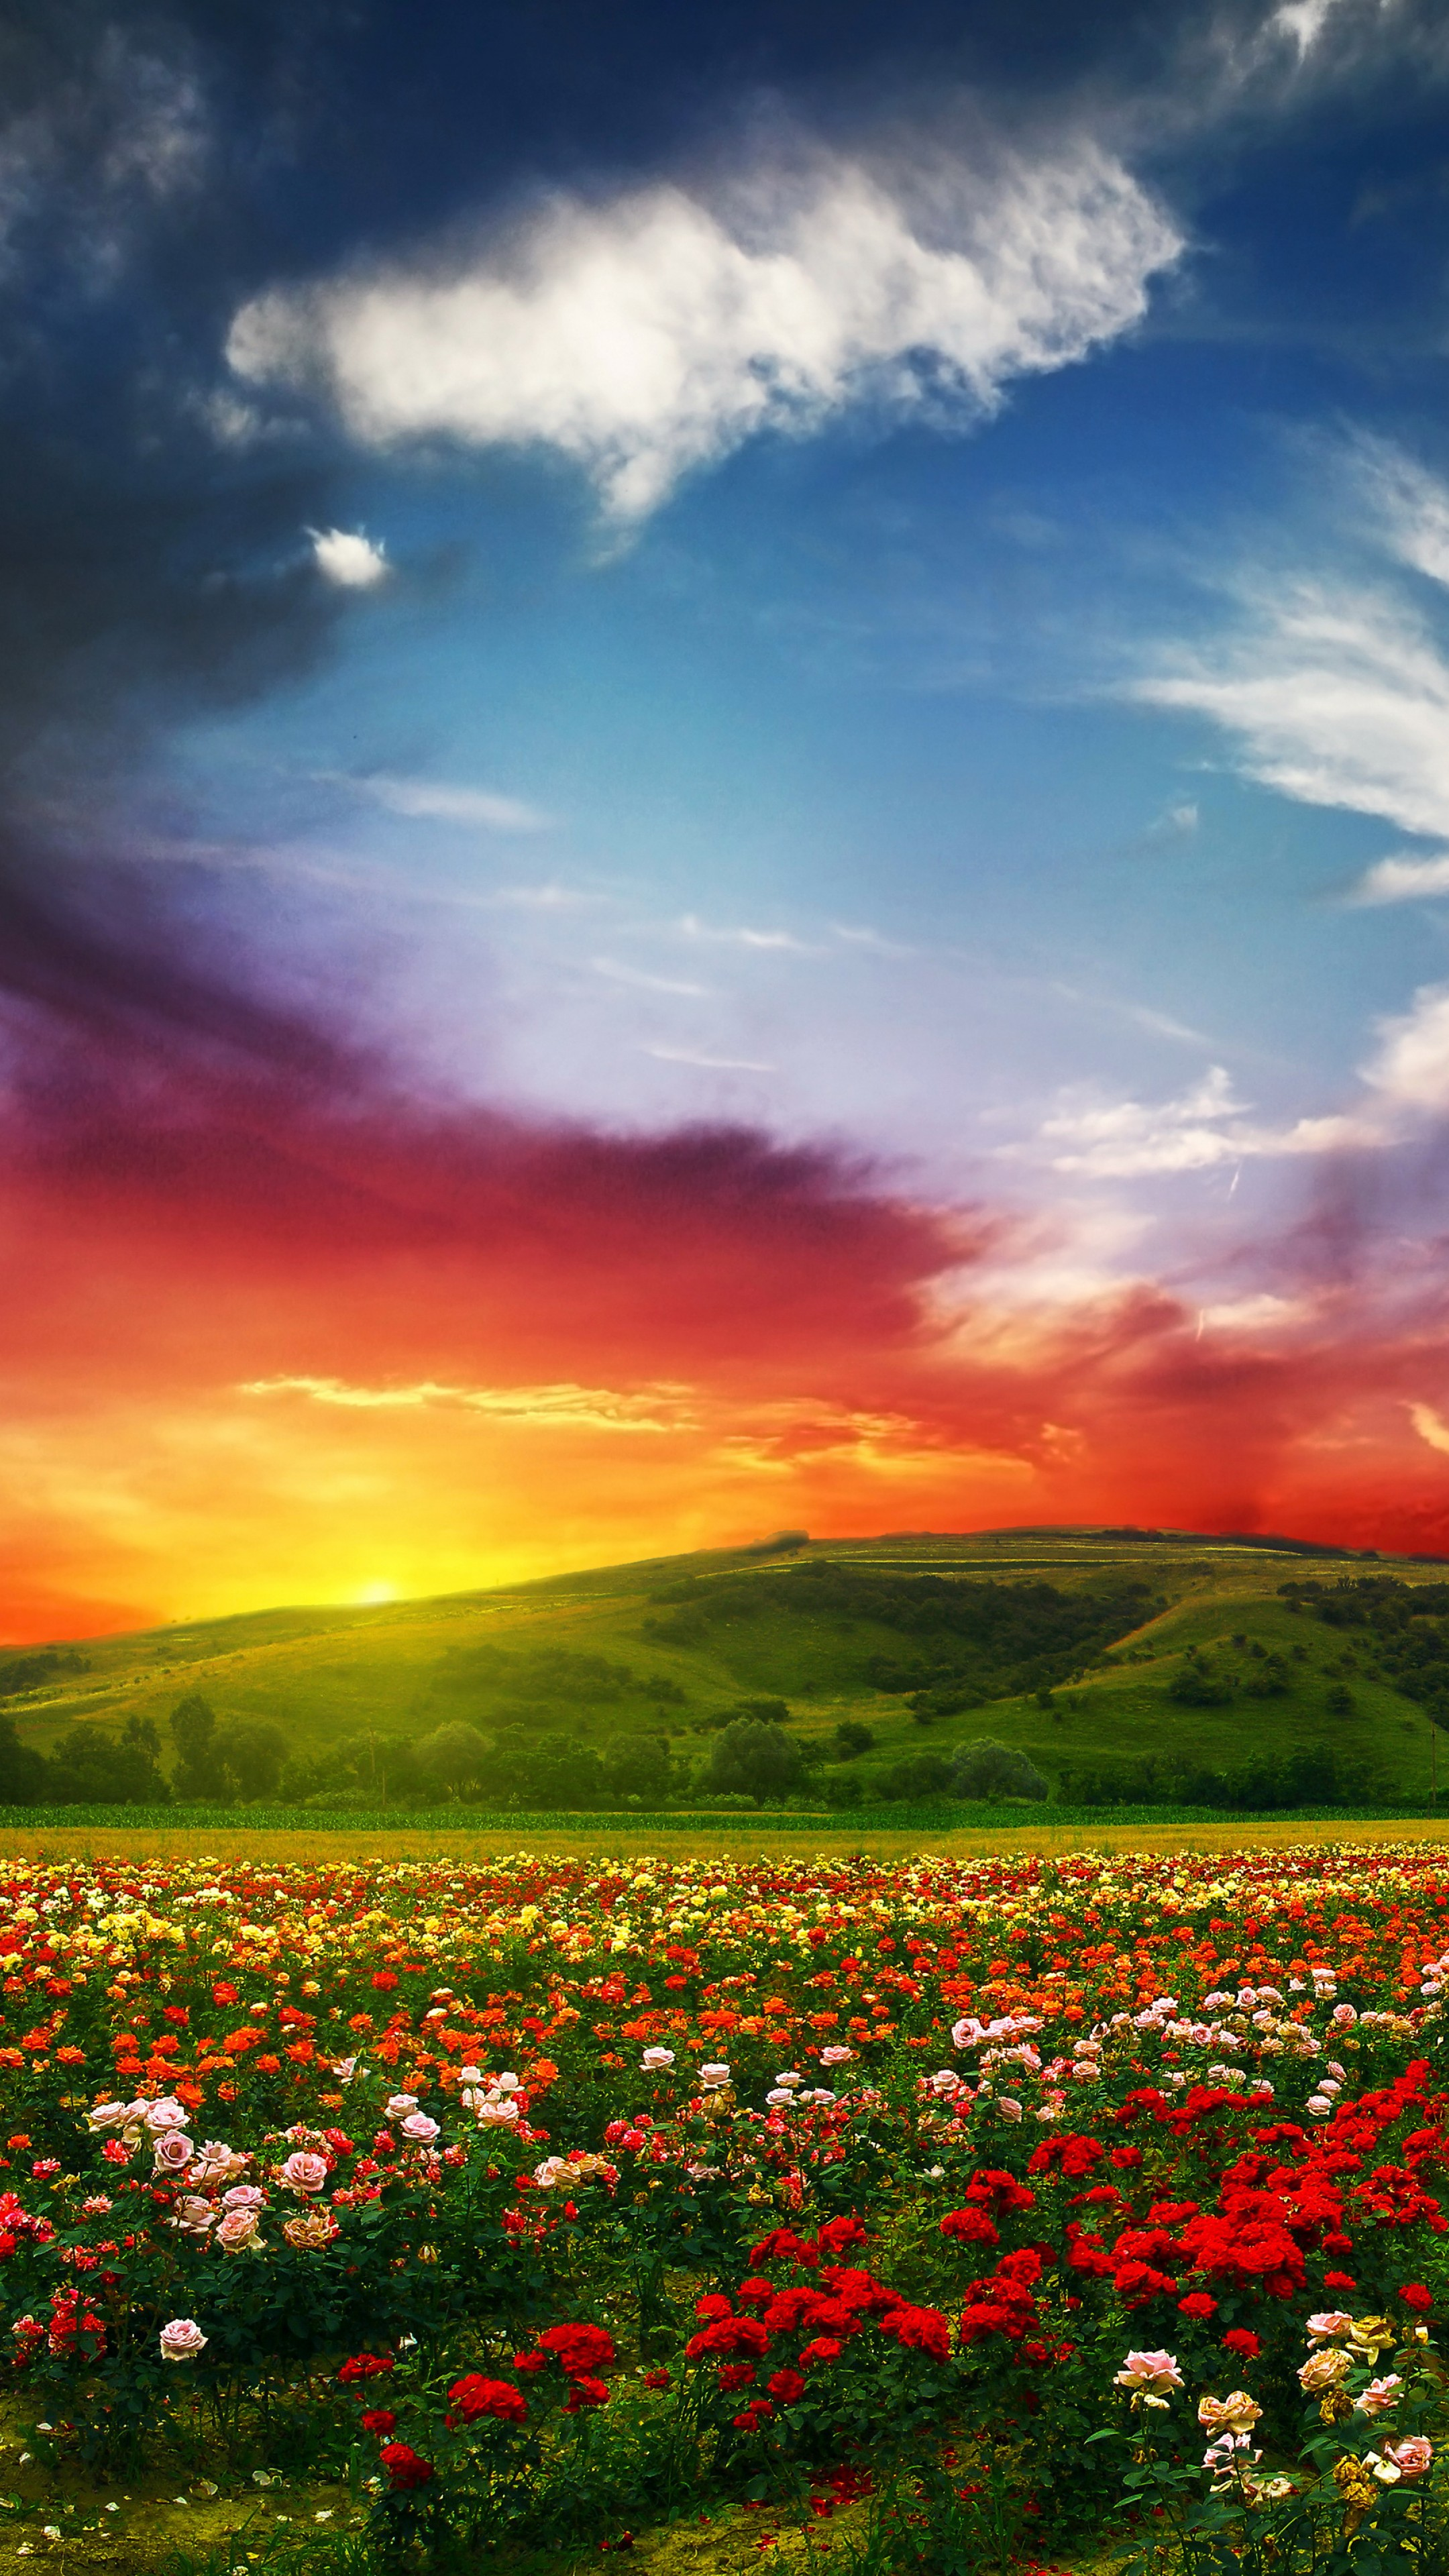 Best Hd Wallpapers With Quotes Wallpaper India 5k 4k Wallpaper Valley Of Flowers